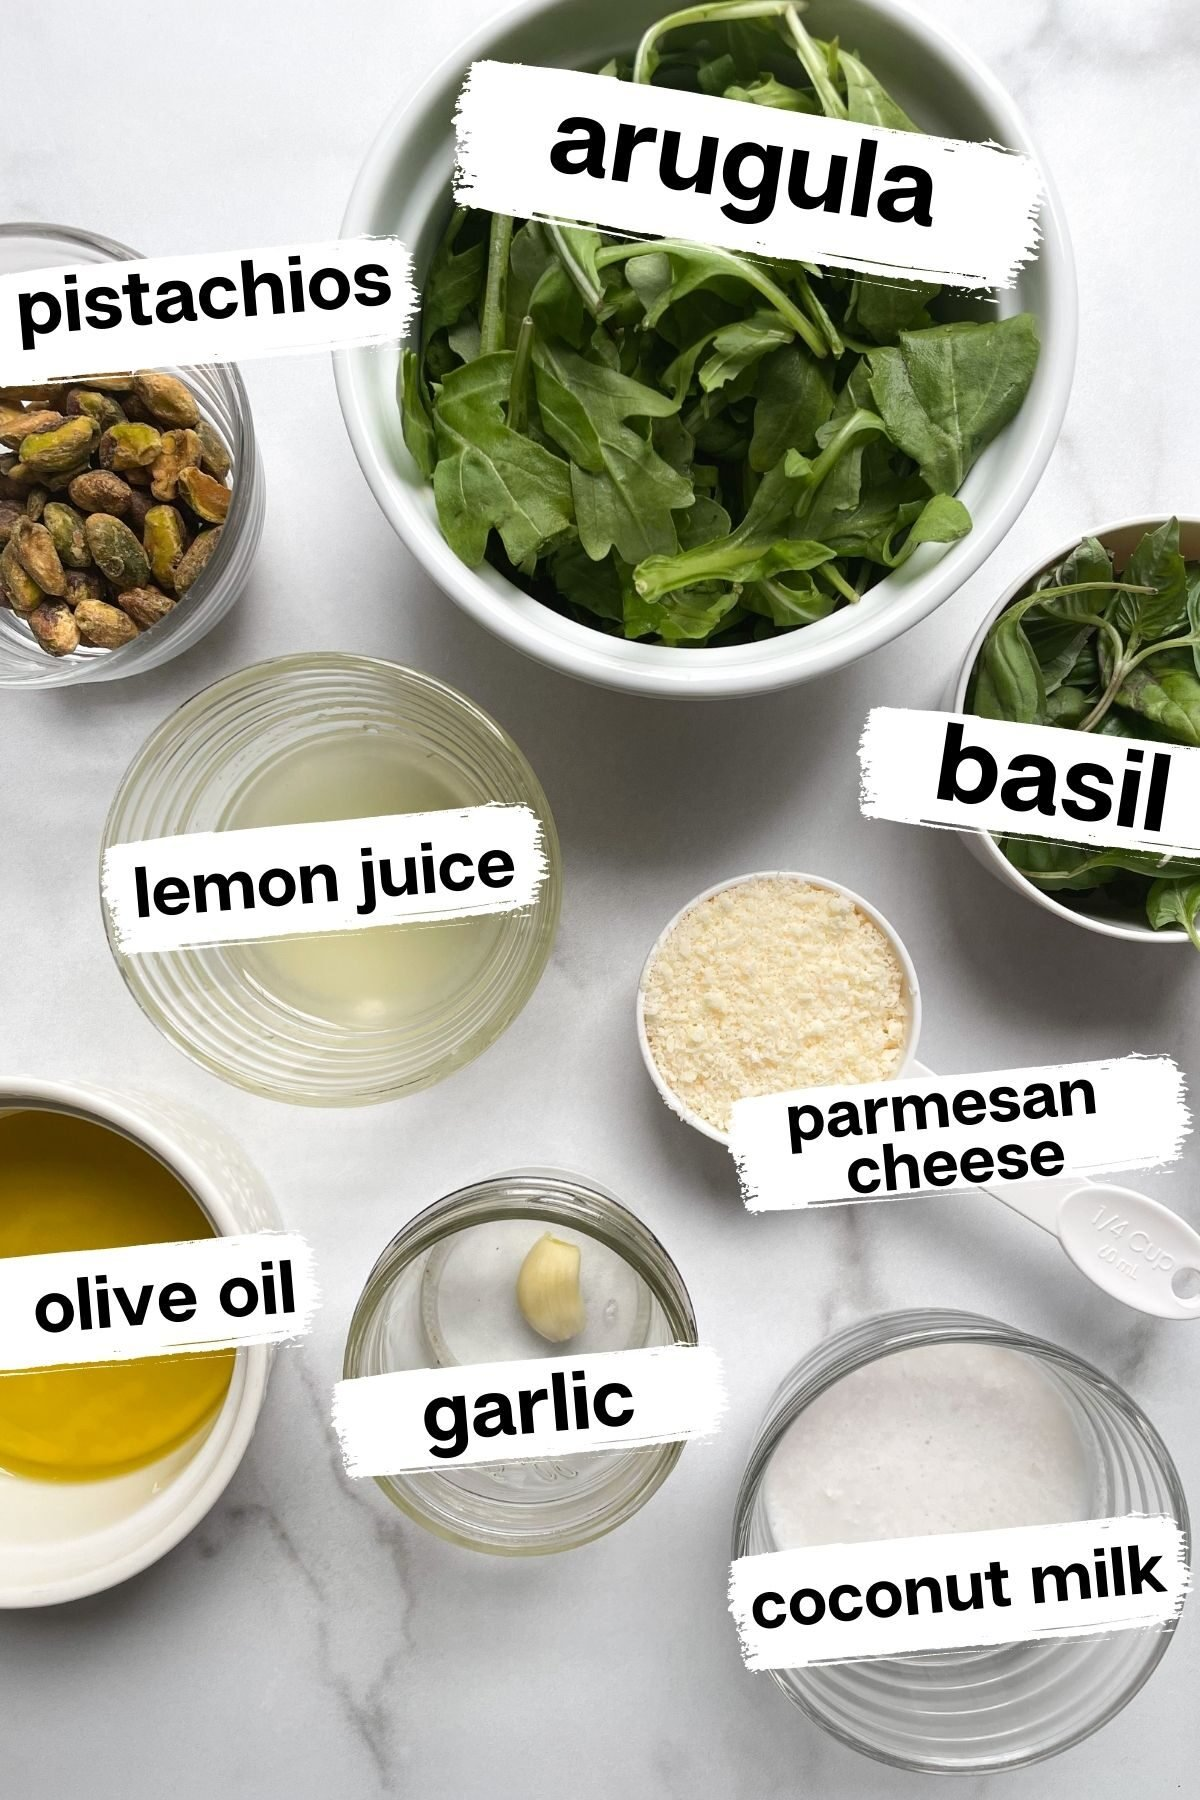 ingredients for Arugula Basil Pesto Without Pine Nuts